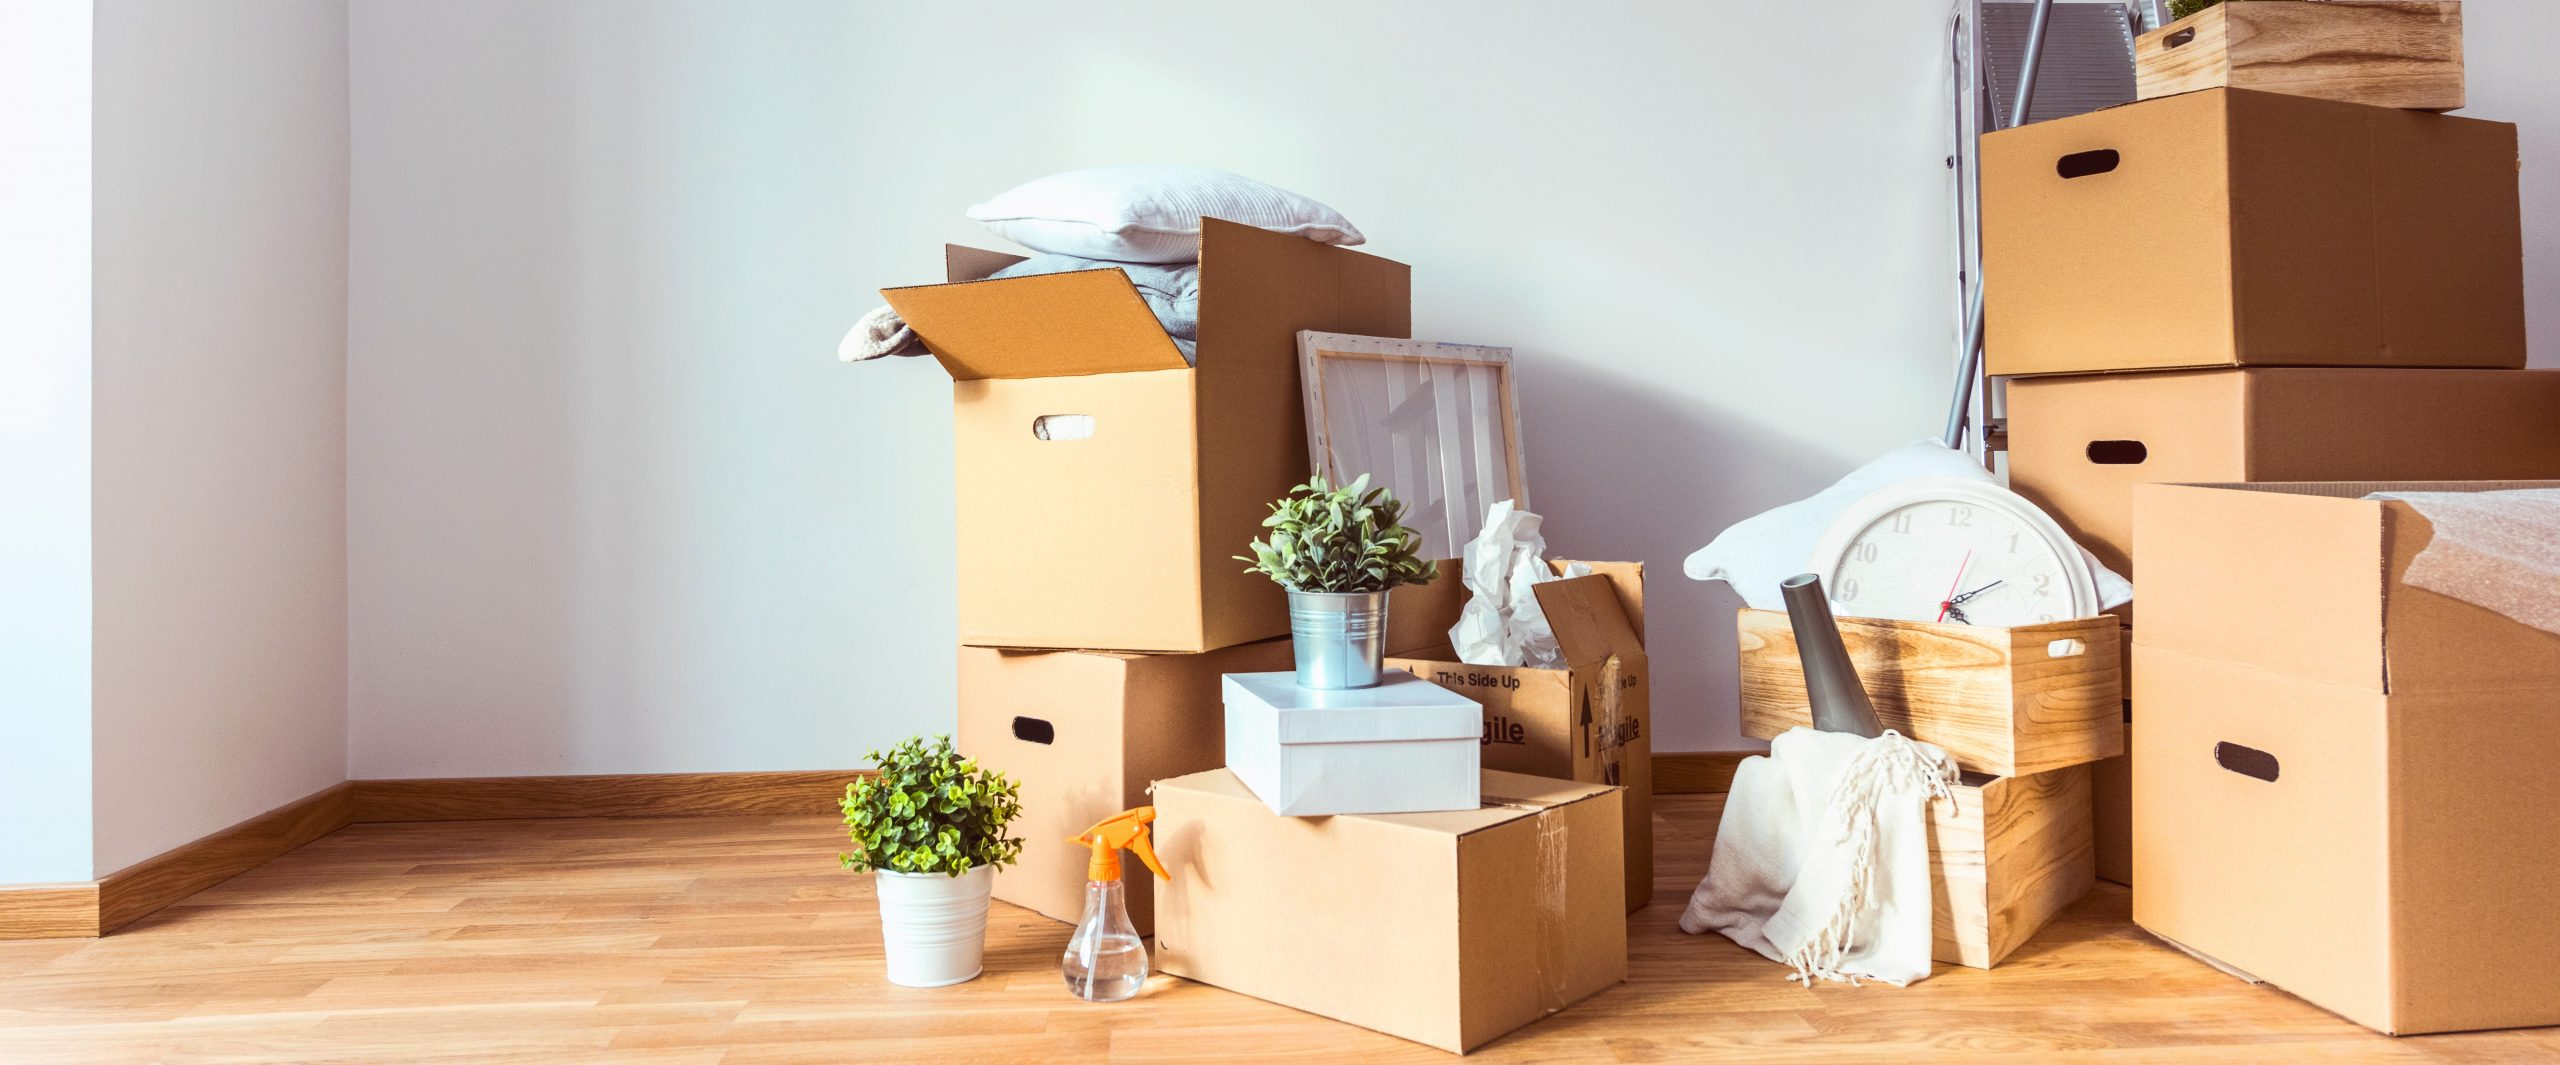 7 Superstitions to Consider when Moving into a New Home